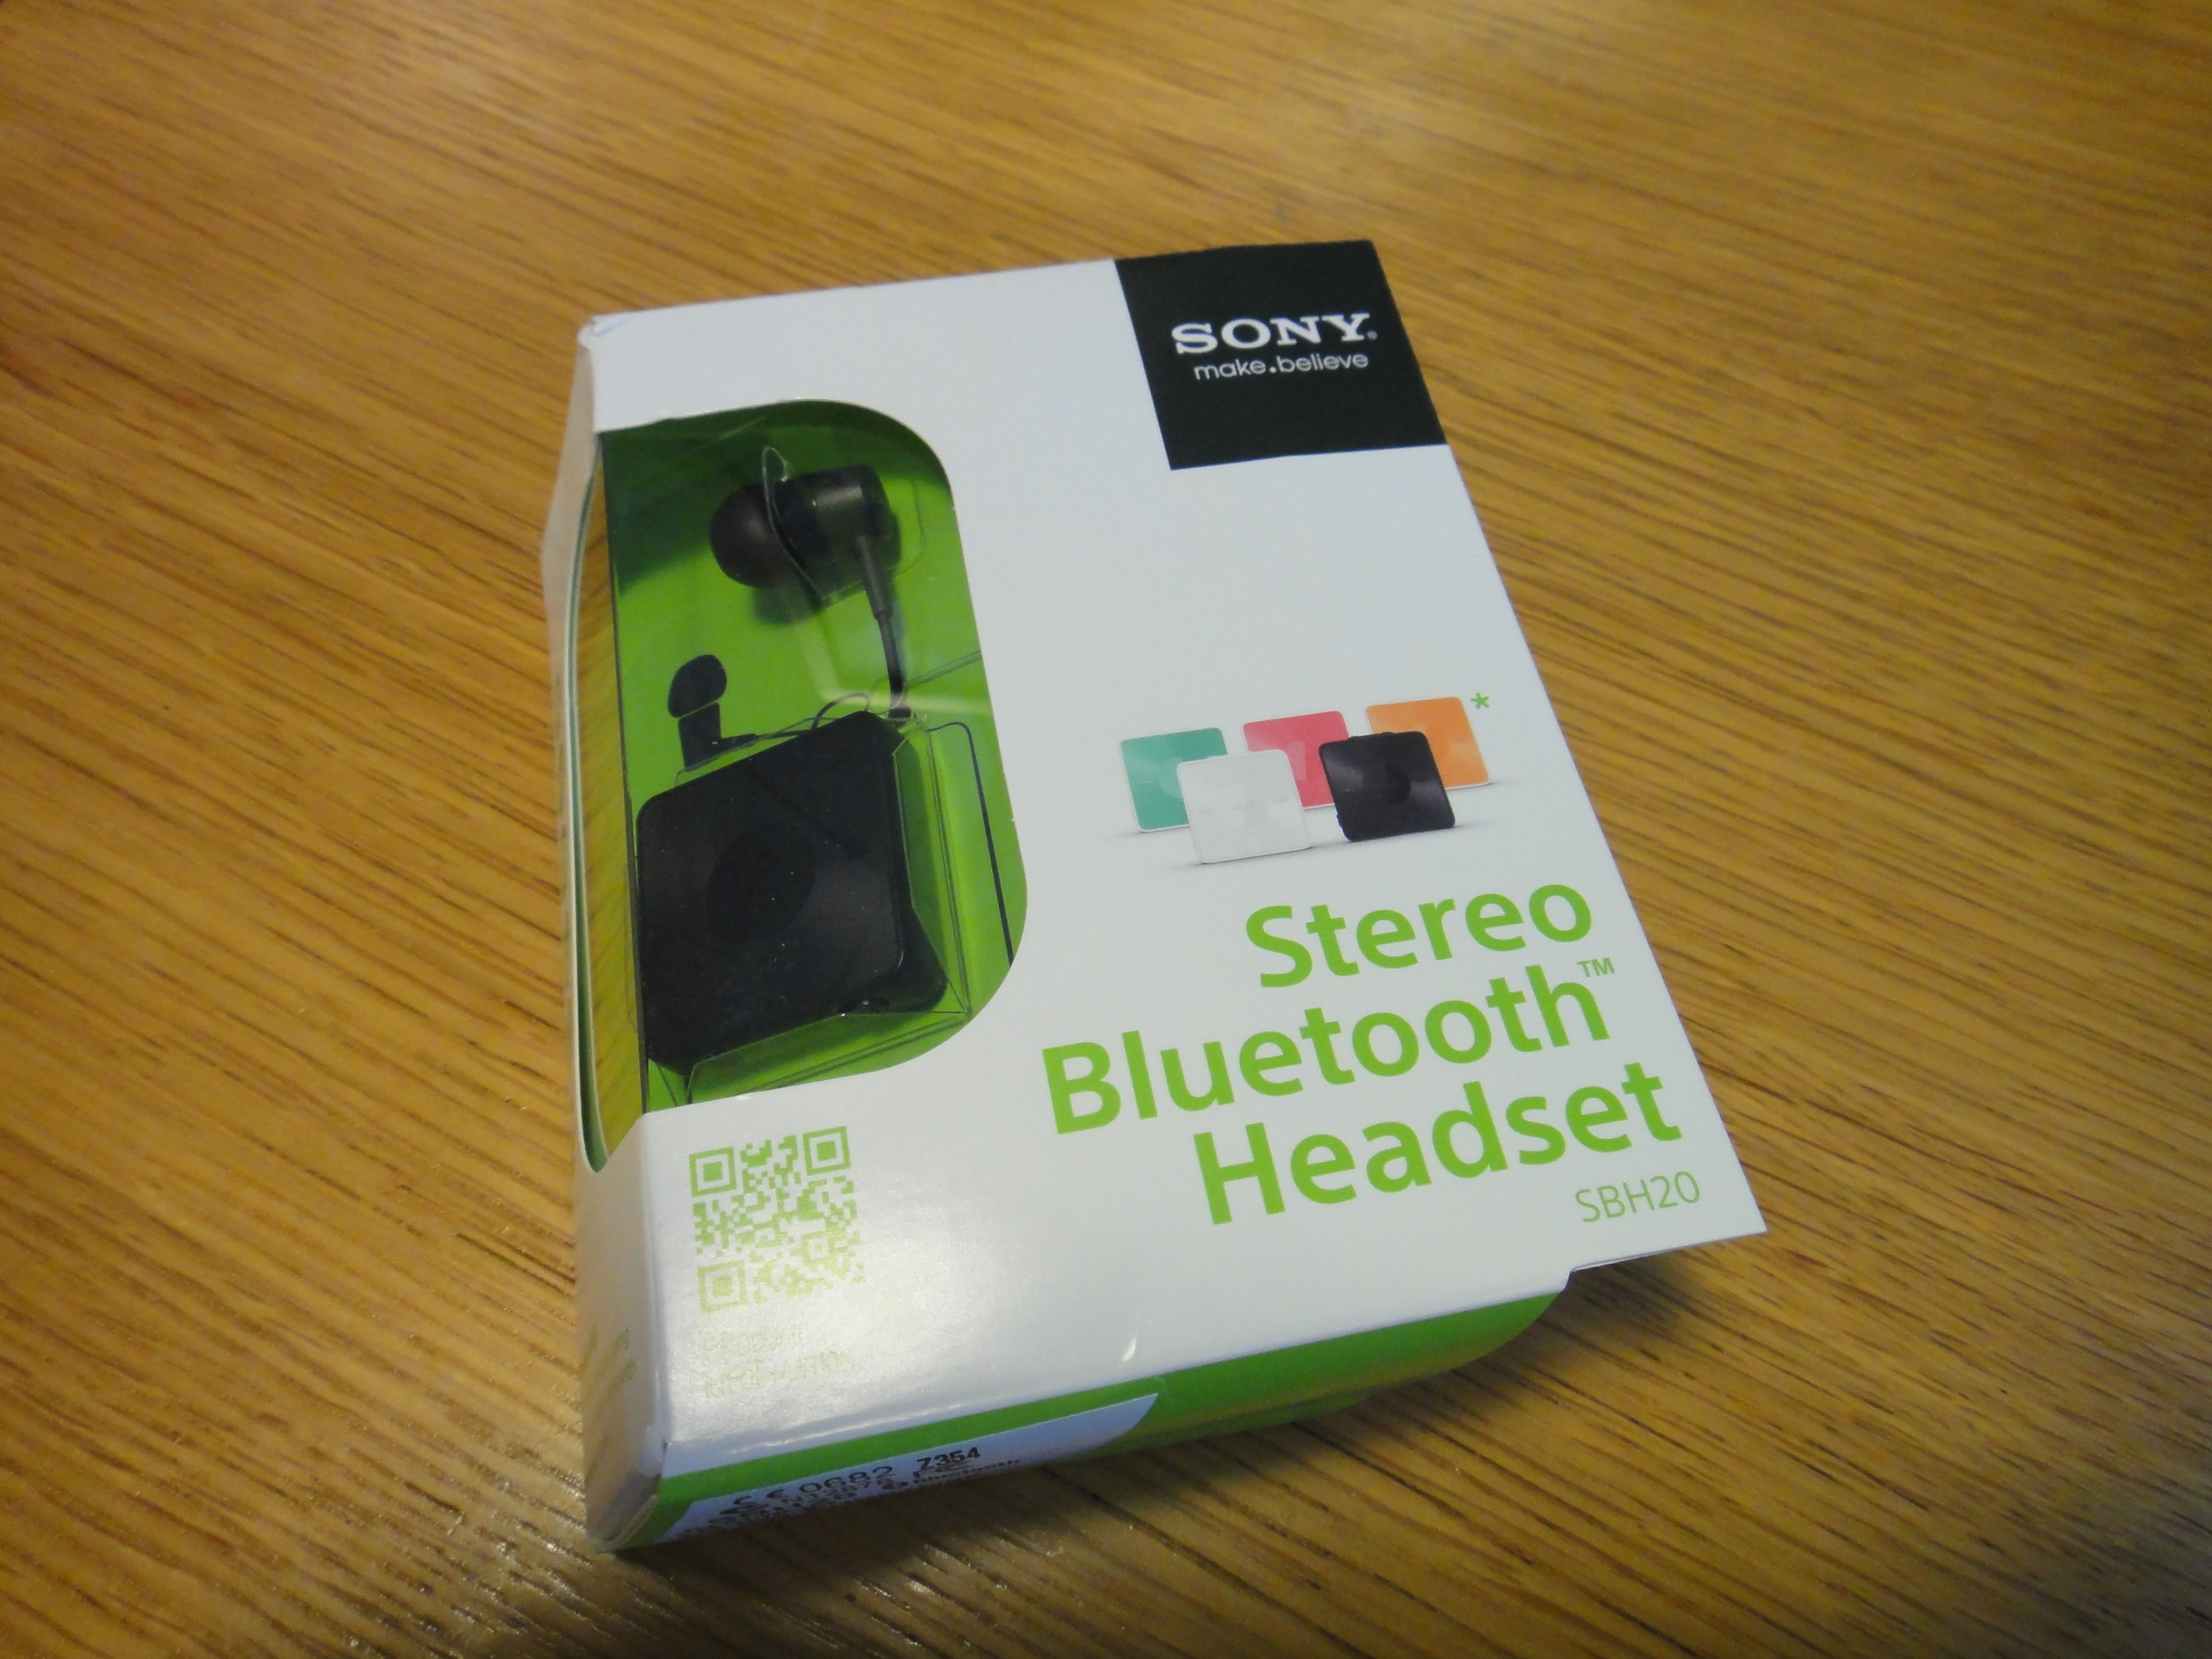 Sold as a bluetooth headset, the SBH20s have a trick up their sleeve...